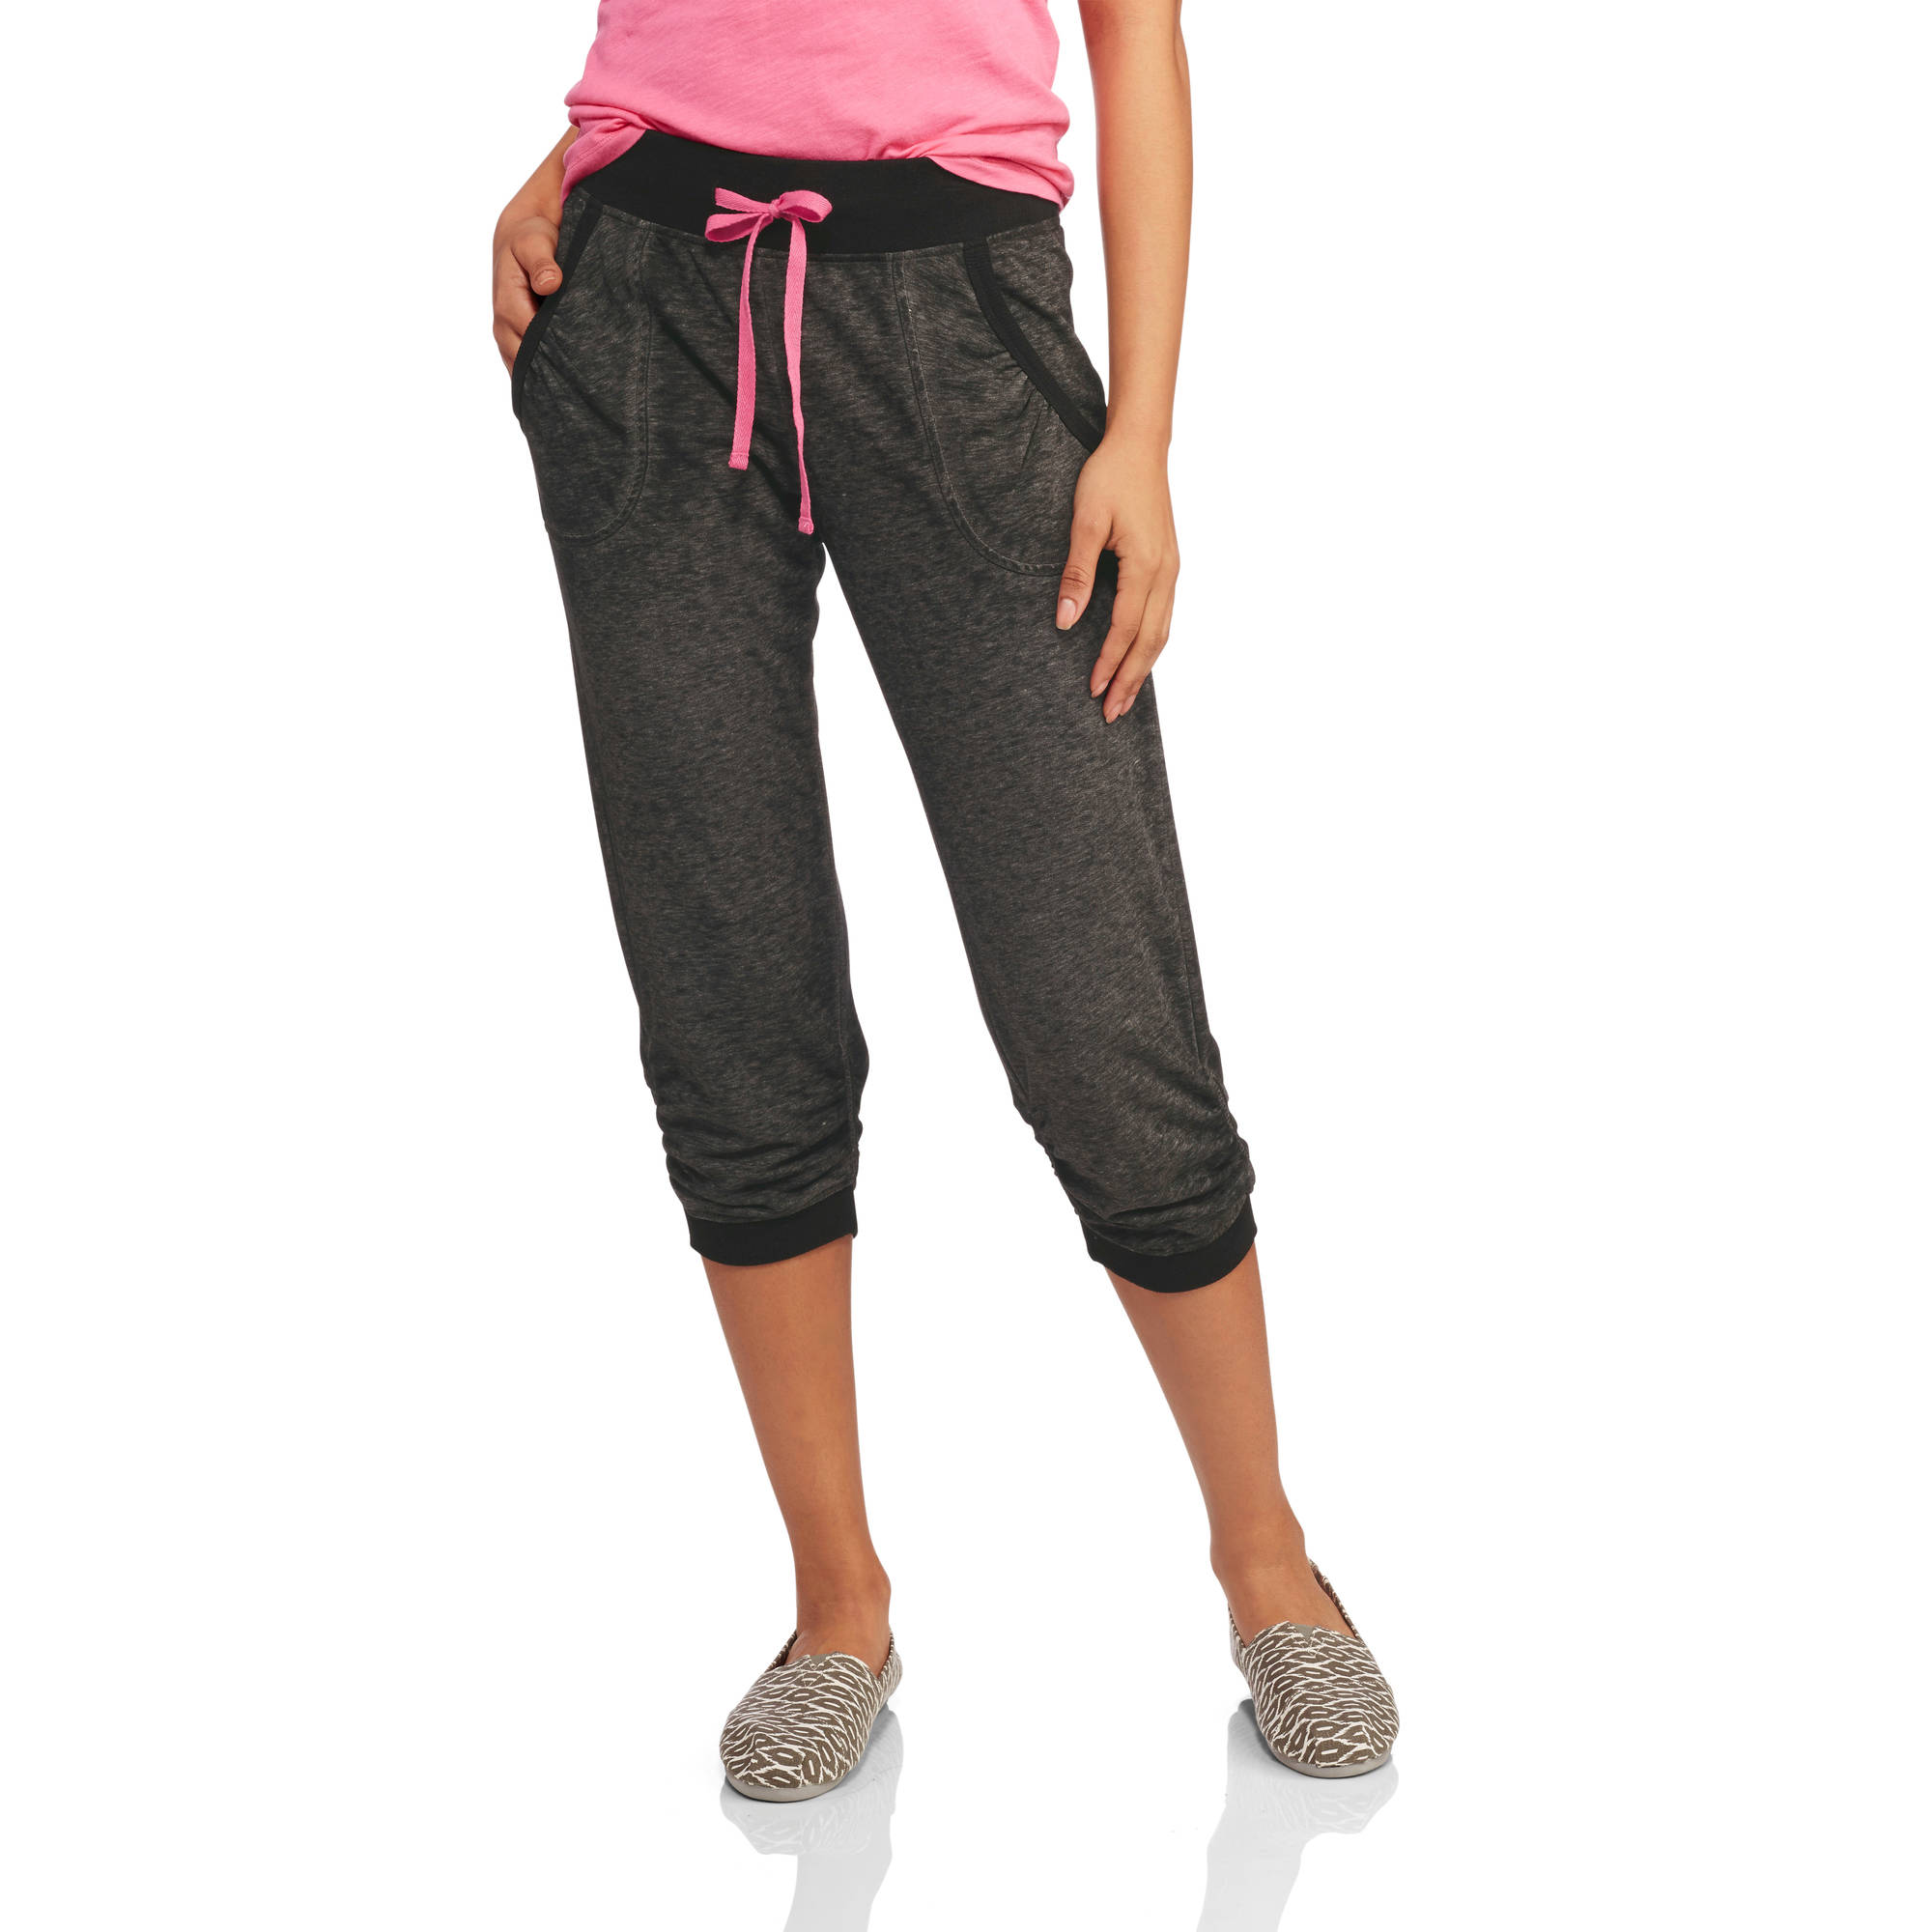 No Boundaries Juniors' Cinch Cuff Capri Sweatpants - Walmart.com